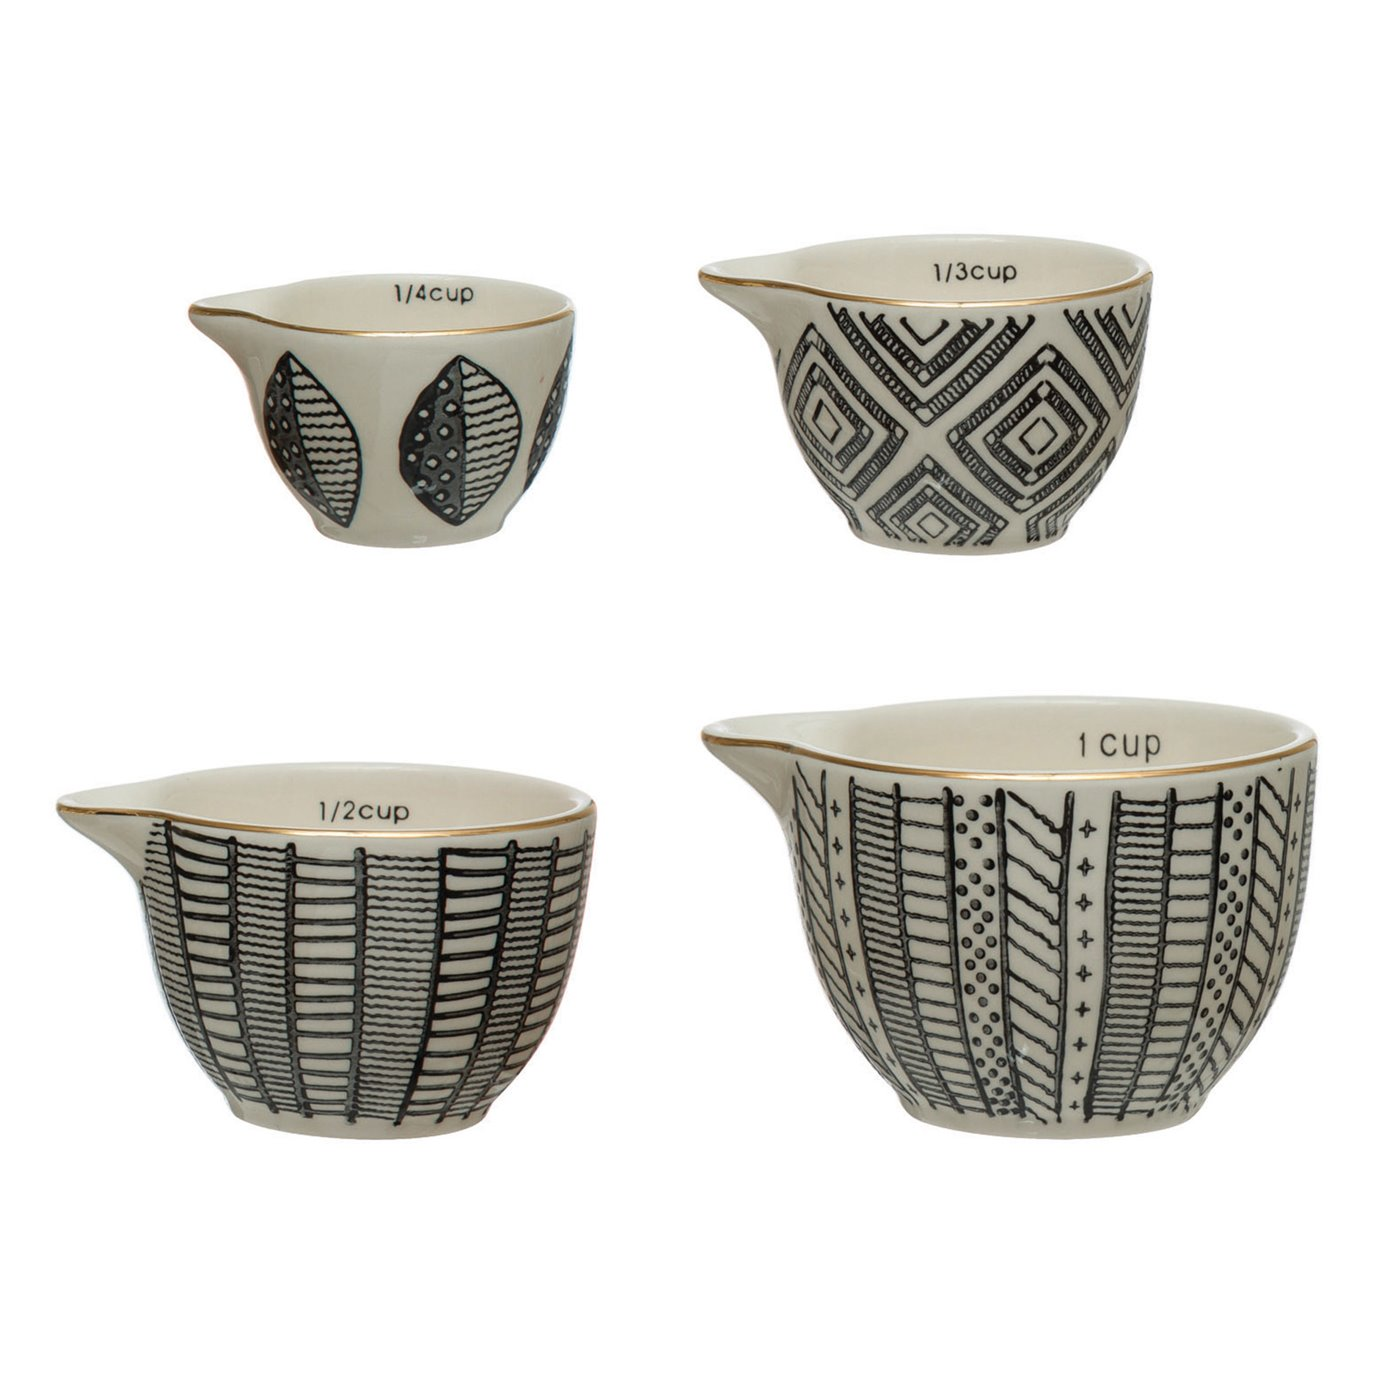 Stoneware Measuring Cups with Pattern & Gold Electroplating, Black & White, Set of 4